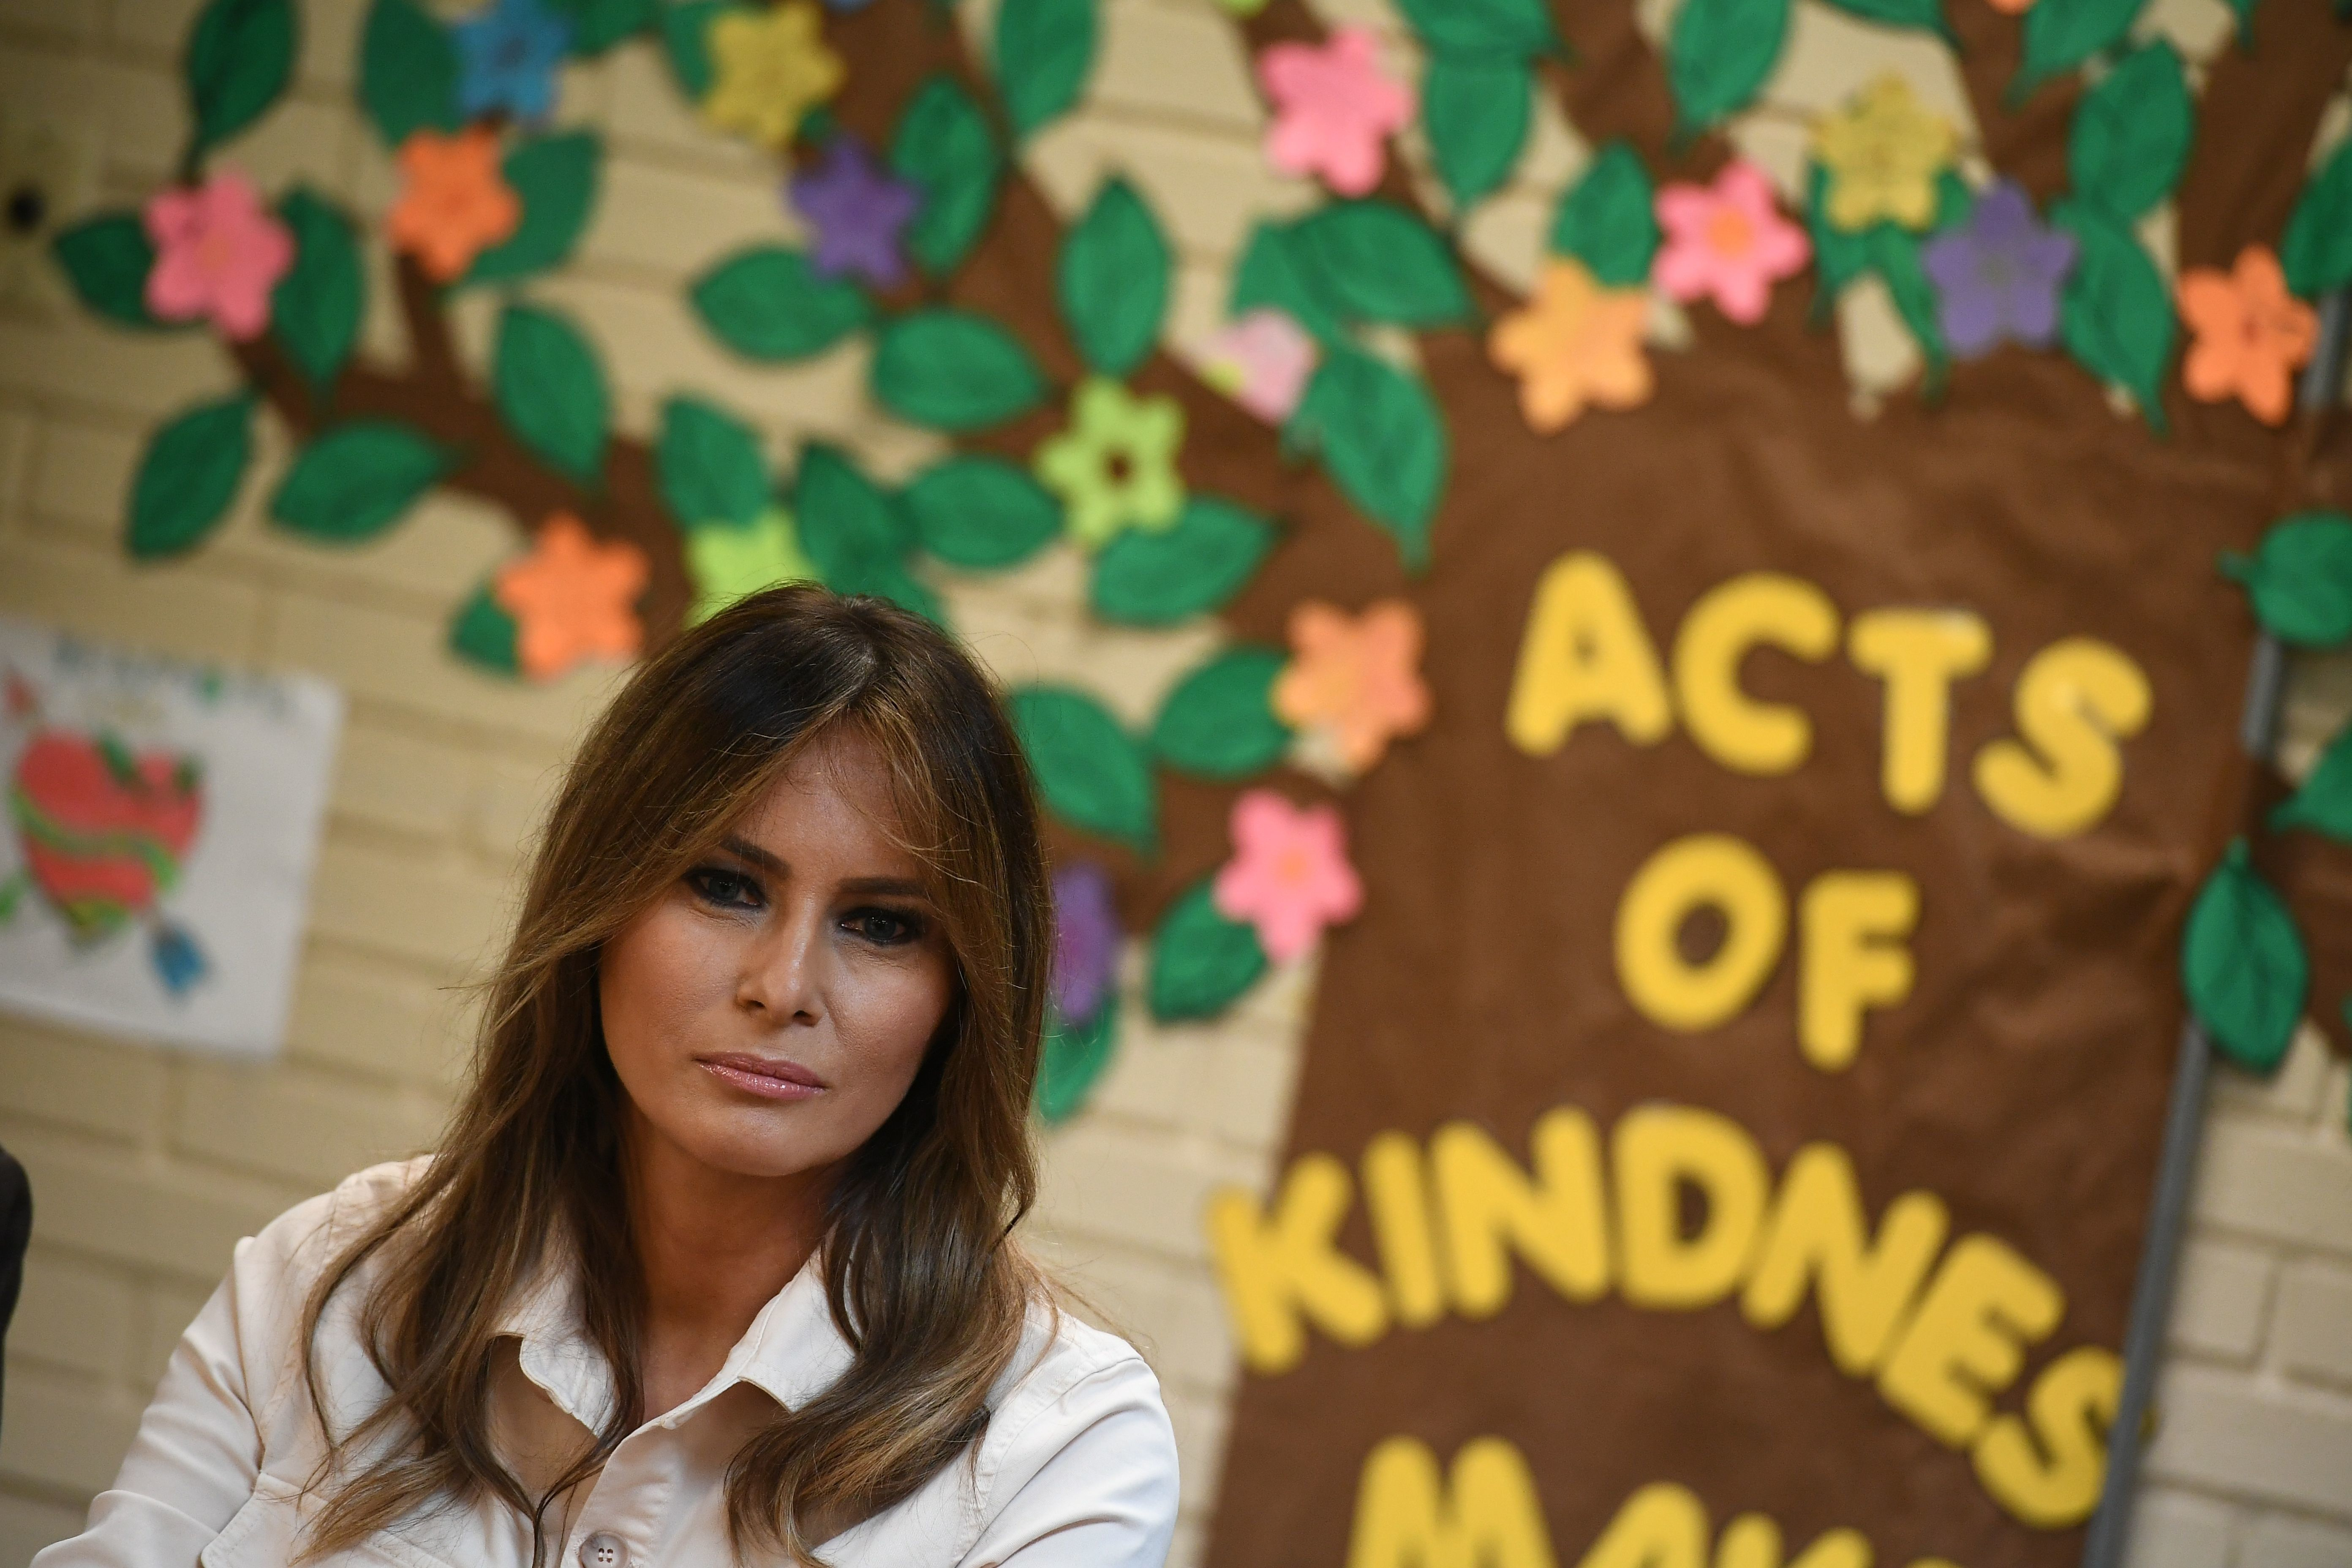 TOPSHOT - US First Lady Melania Trump takes part in a roundtable discussion at Luthern Social Services of the South's Upbring New Hope Children Center in McAllen, Texas on June 21, 2018. - First Lady Melania Trump made a surprise visit to the US-Mexican border on Thursday, June 21, 2018 as her husband's administration seeks to quell a firestorm over migrant family separations. President Donald Trump first announced the trip by his wife, who will tour a non-profit social services center for migrant children, as well as a customs and border patrol processing center, according to a statement from her office. (Photo by MANDEL NGAN / AFP)        (Photo credit should read MANDEL NGAN/AFP/Getty Images)